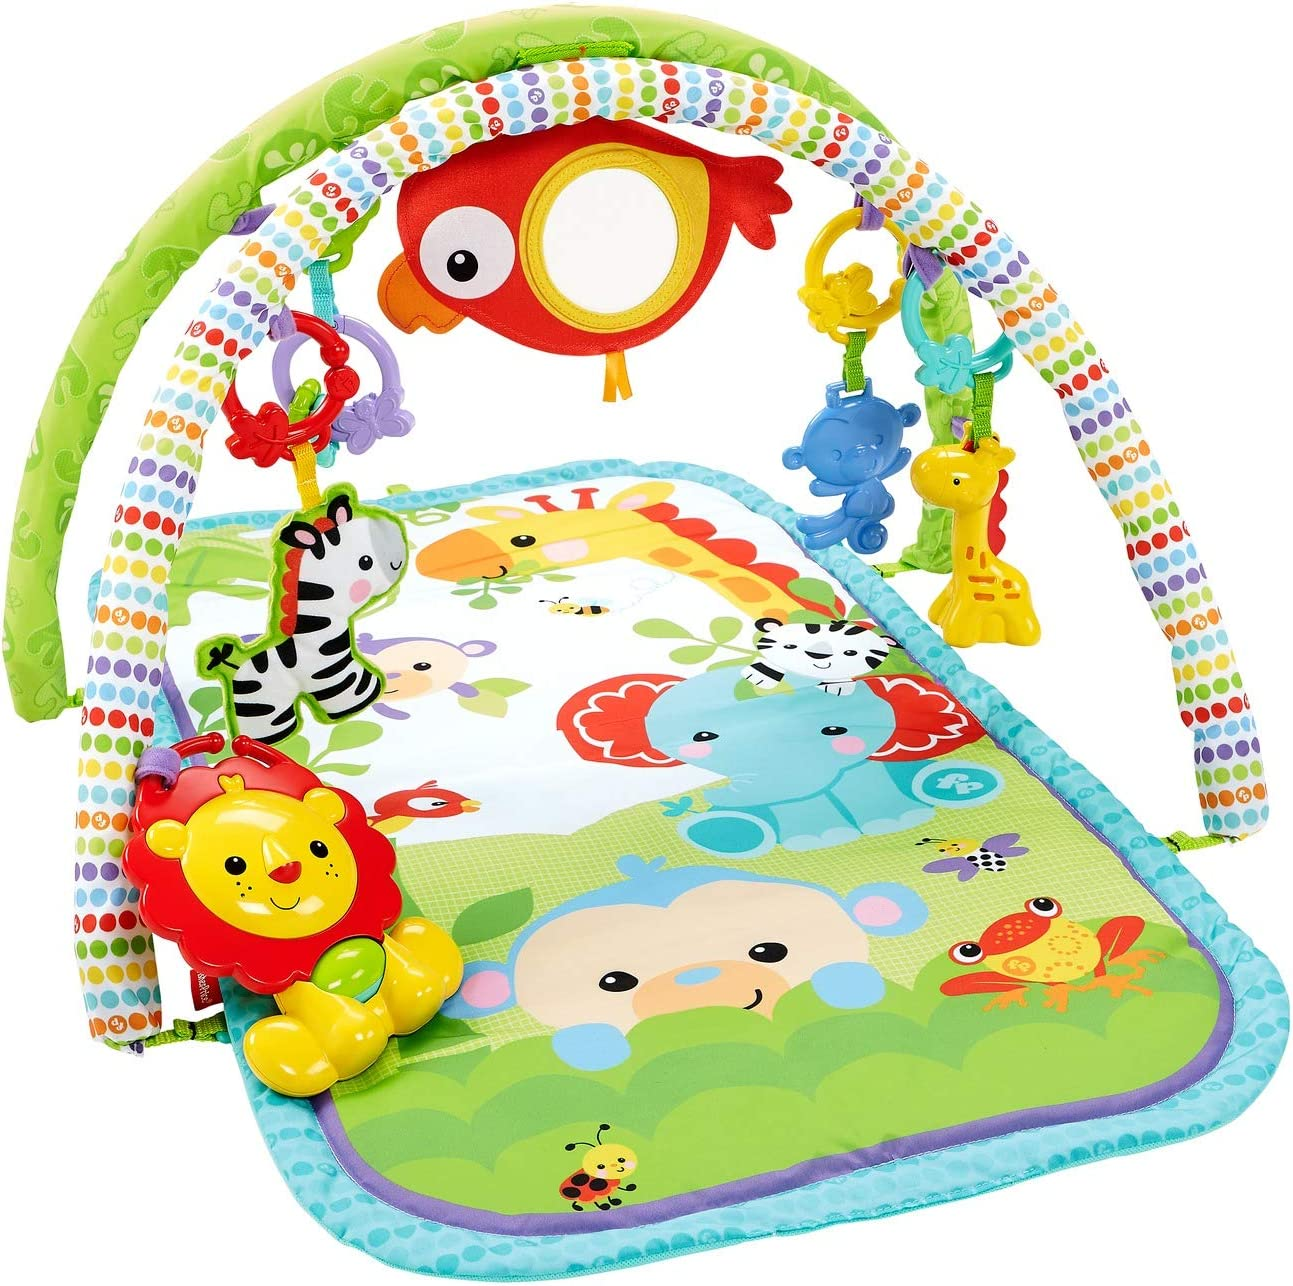 Fisher-Price-CHP85 rey leon musical animalitos, gimnasios bebe, multicolor, 52.8 x 40.9 x 7.1 (Mattel CHP85)